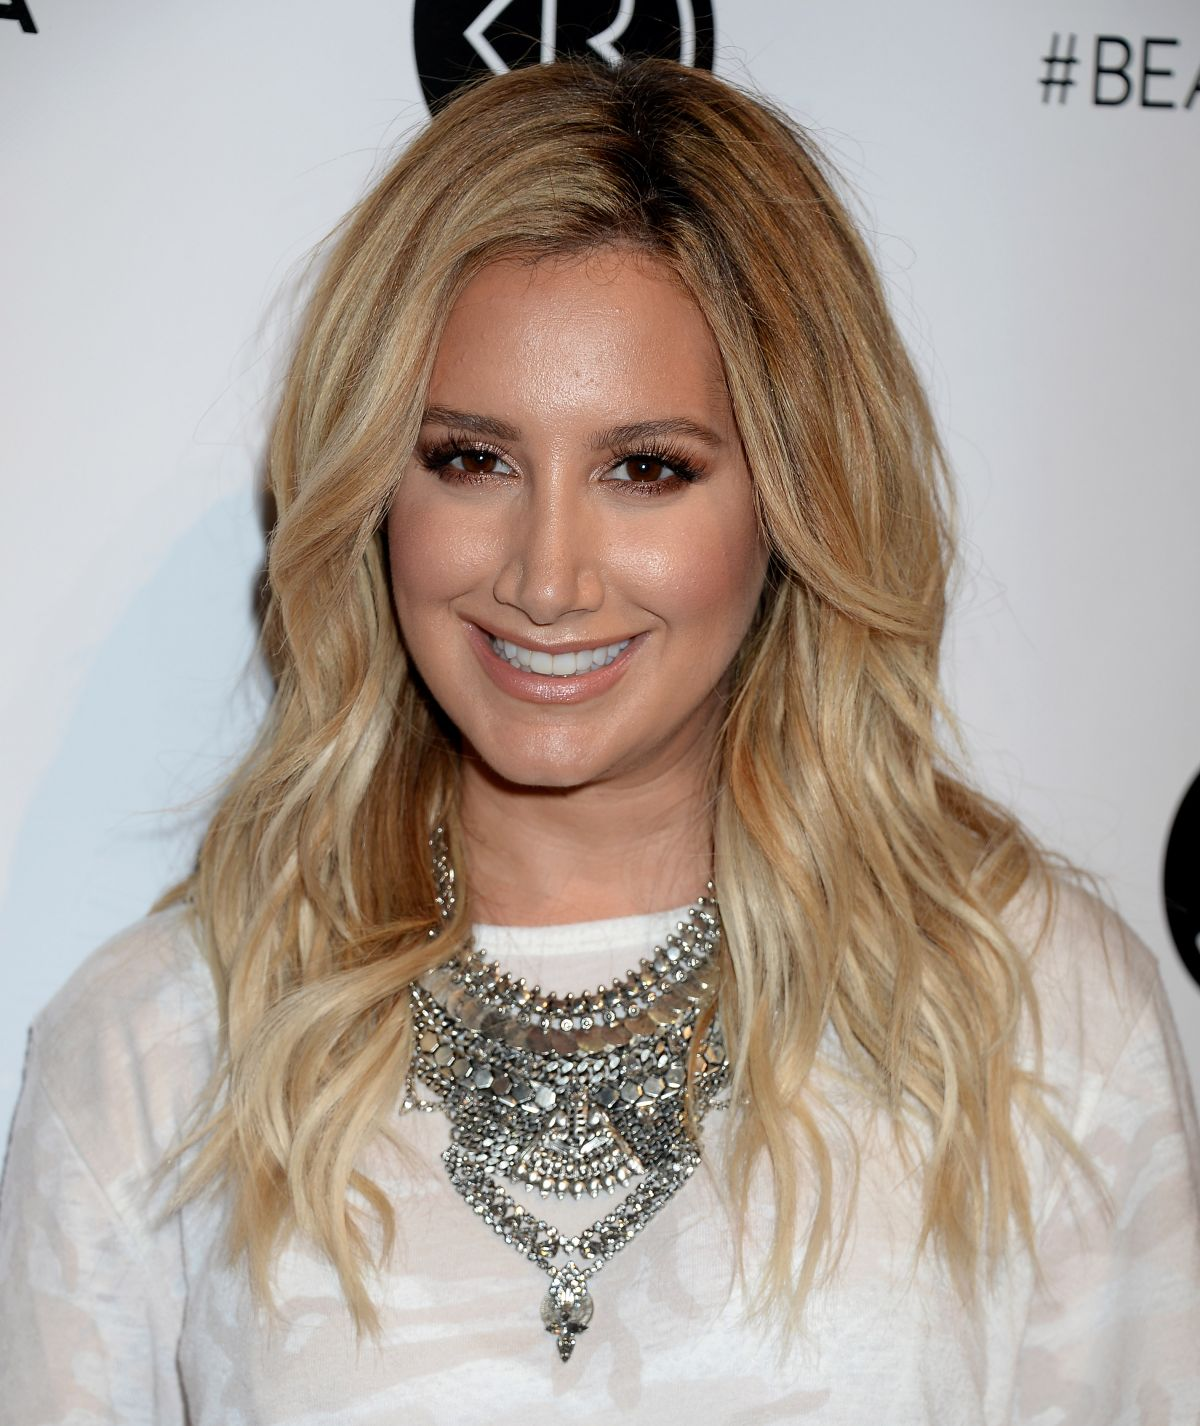 Full HQ Photos of Ashley Tisdale At 2016 Beautycon Festival In Los Angeles